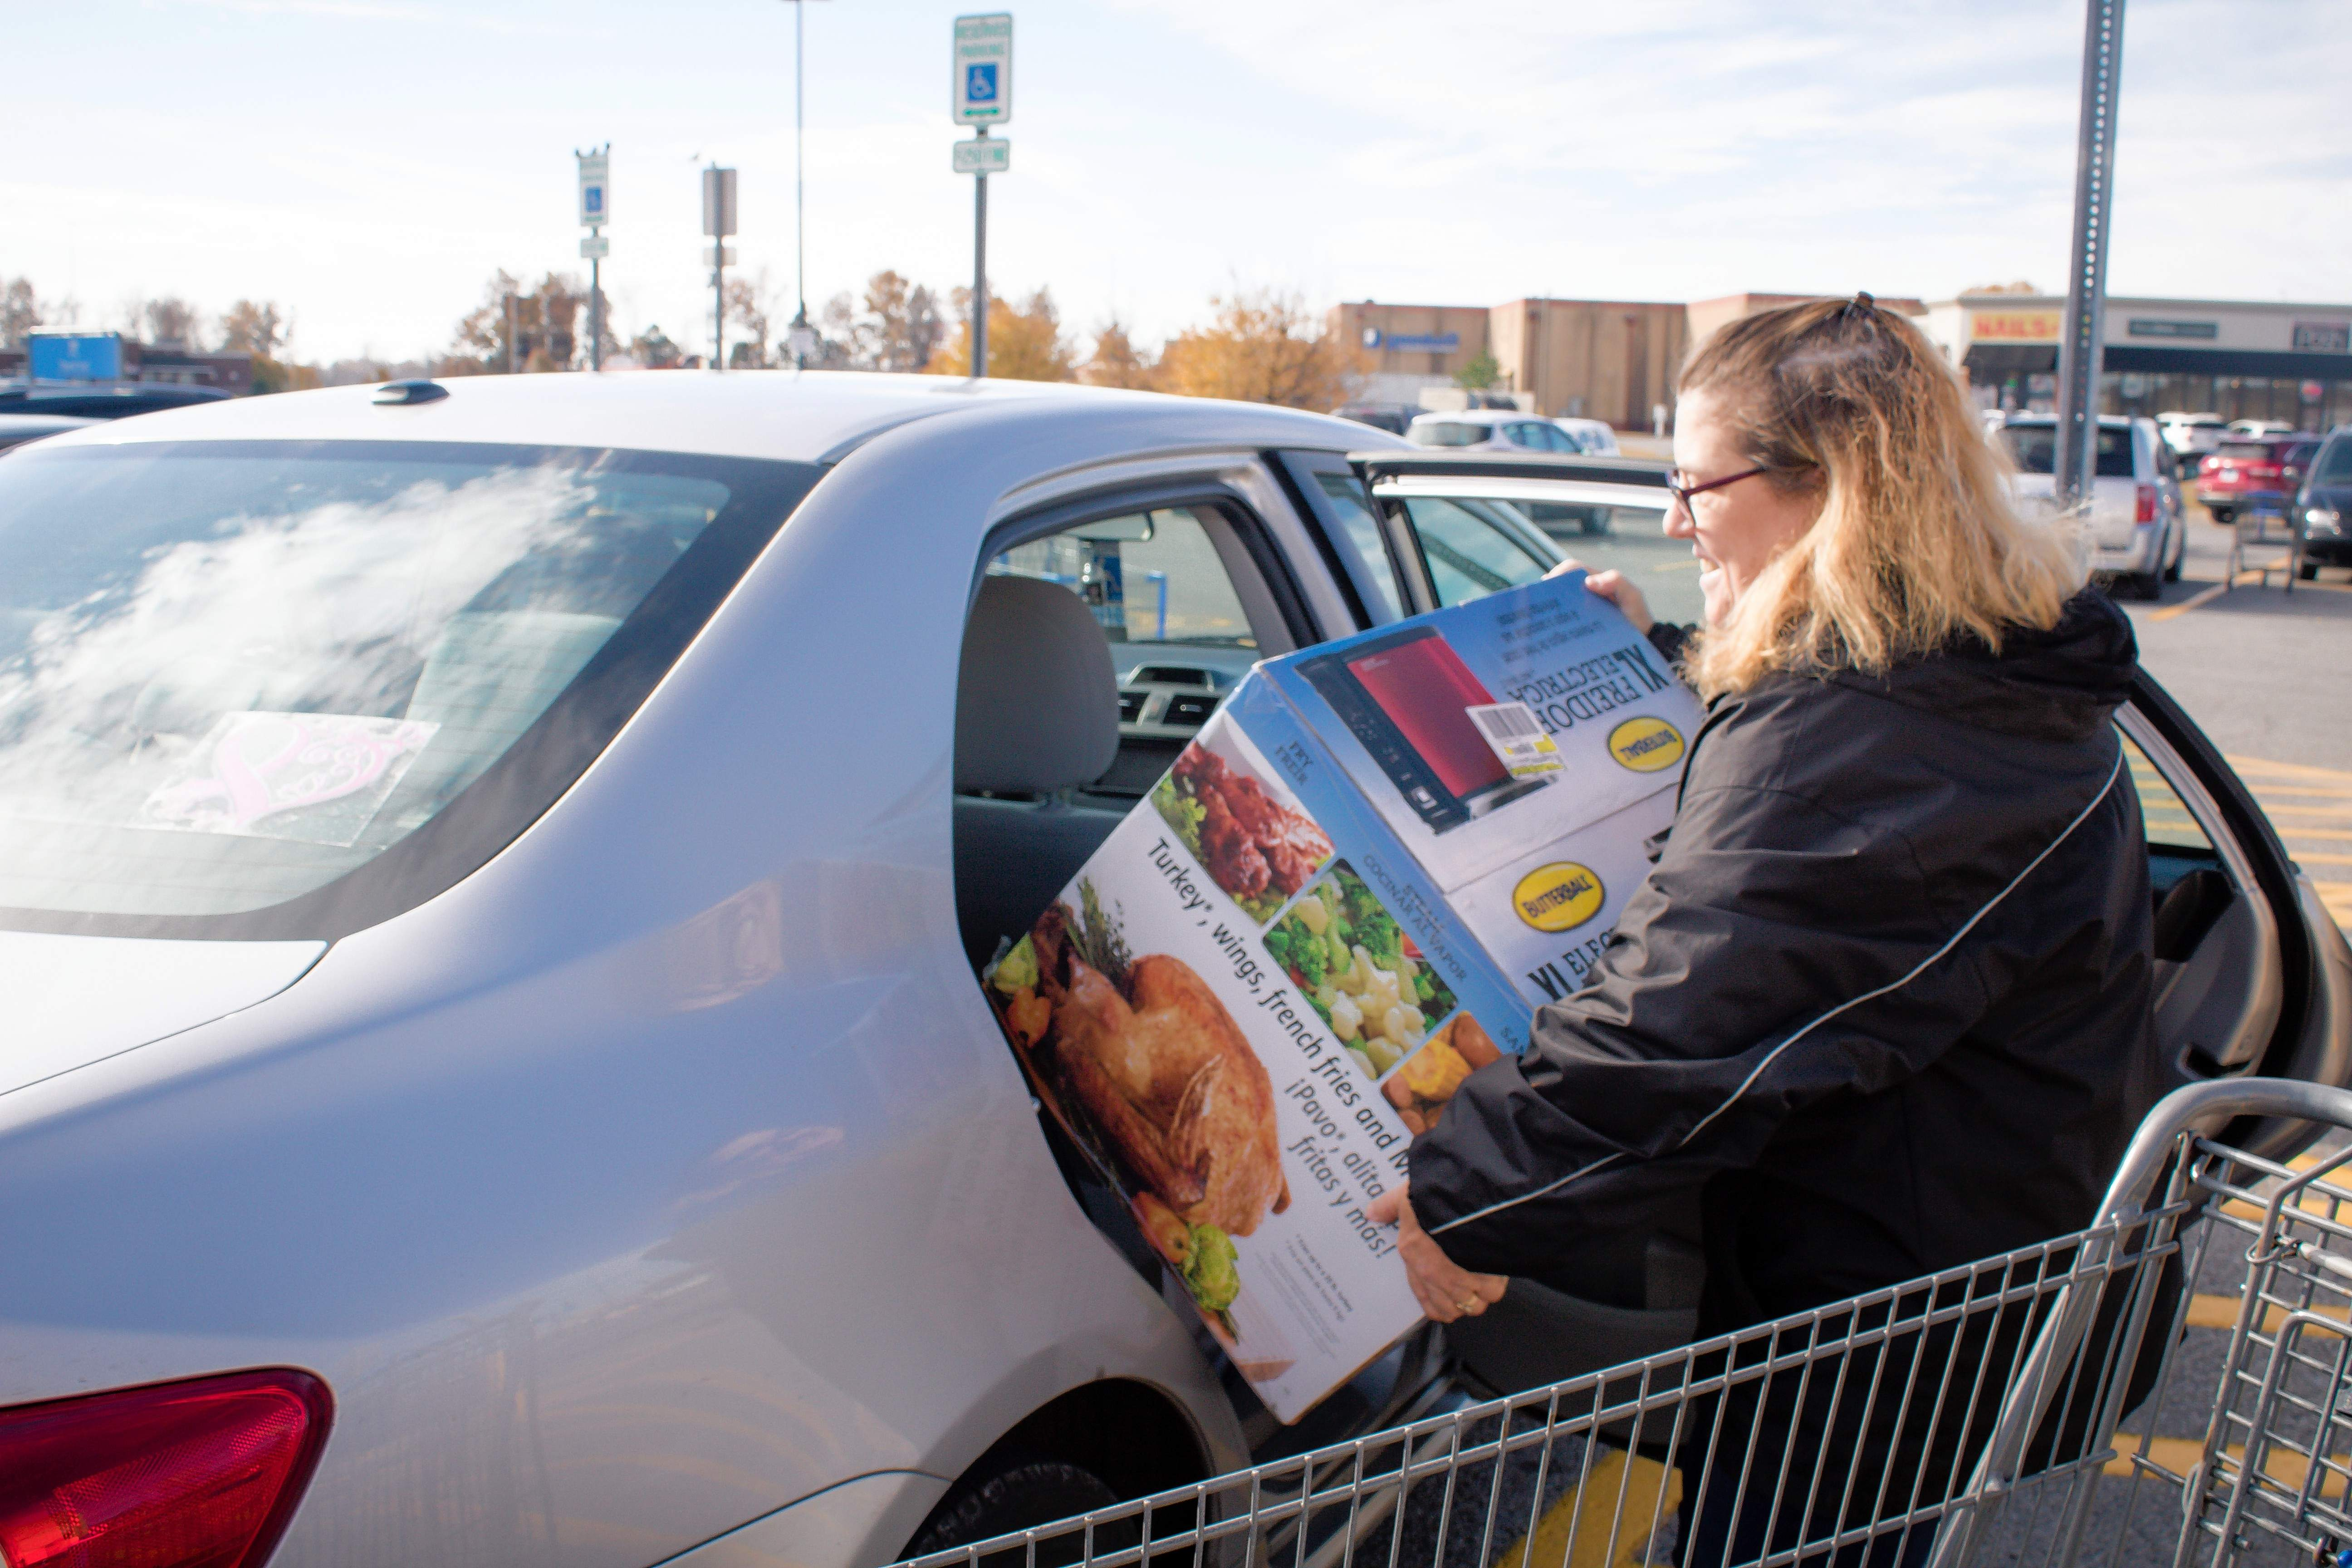 Kathy Akes of Marion loads up her car after Black Friday shopping at Marion Walmart.